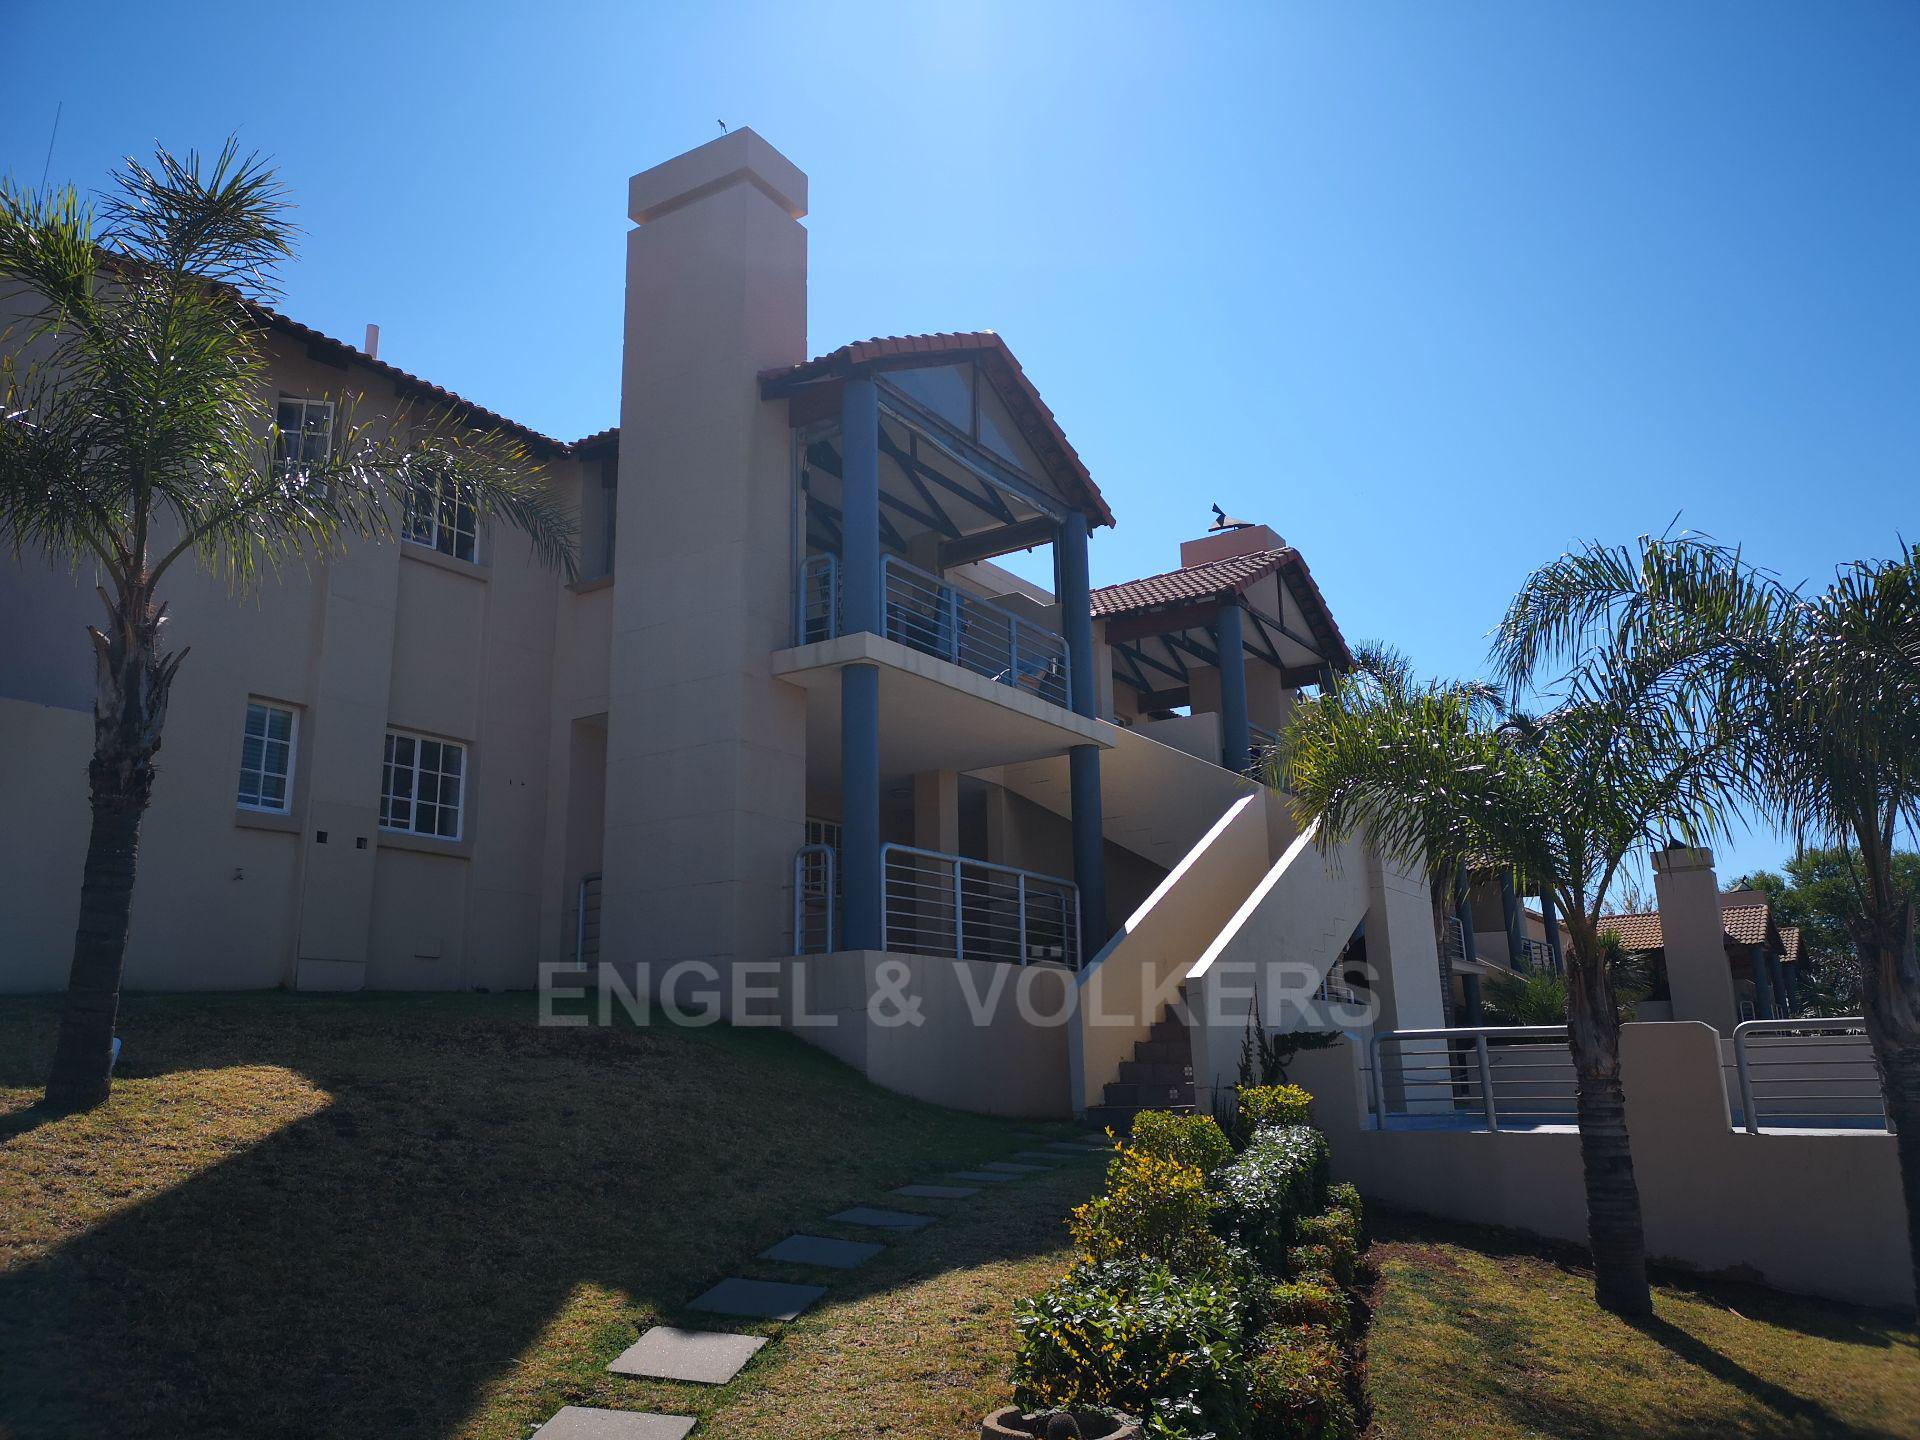 Property and Houses for sale in Erasmuskloof, Simplex, 2 Bedrooms - ZAR 1,295,000